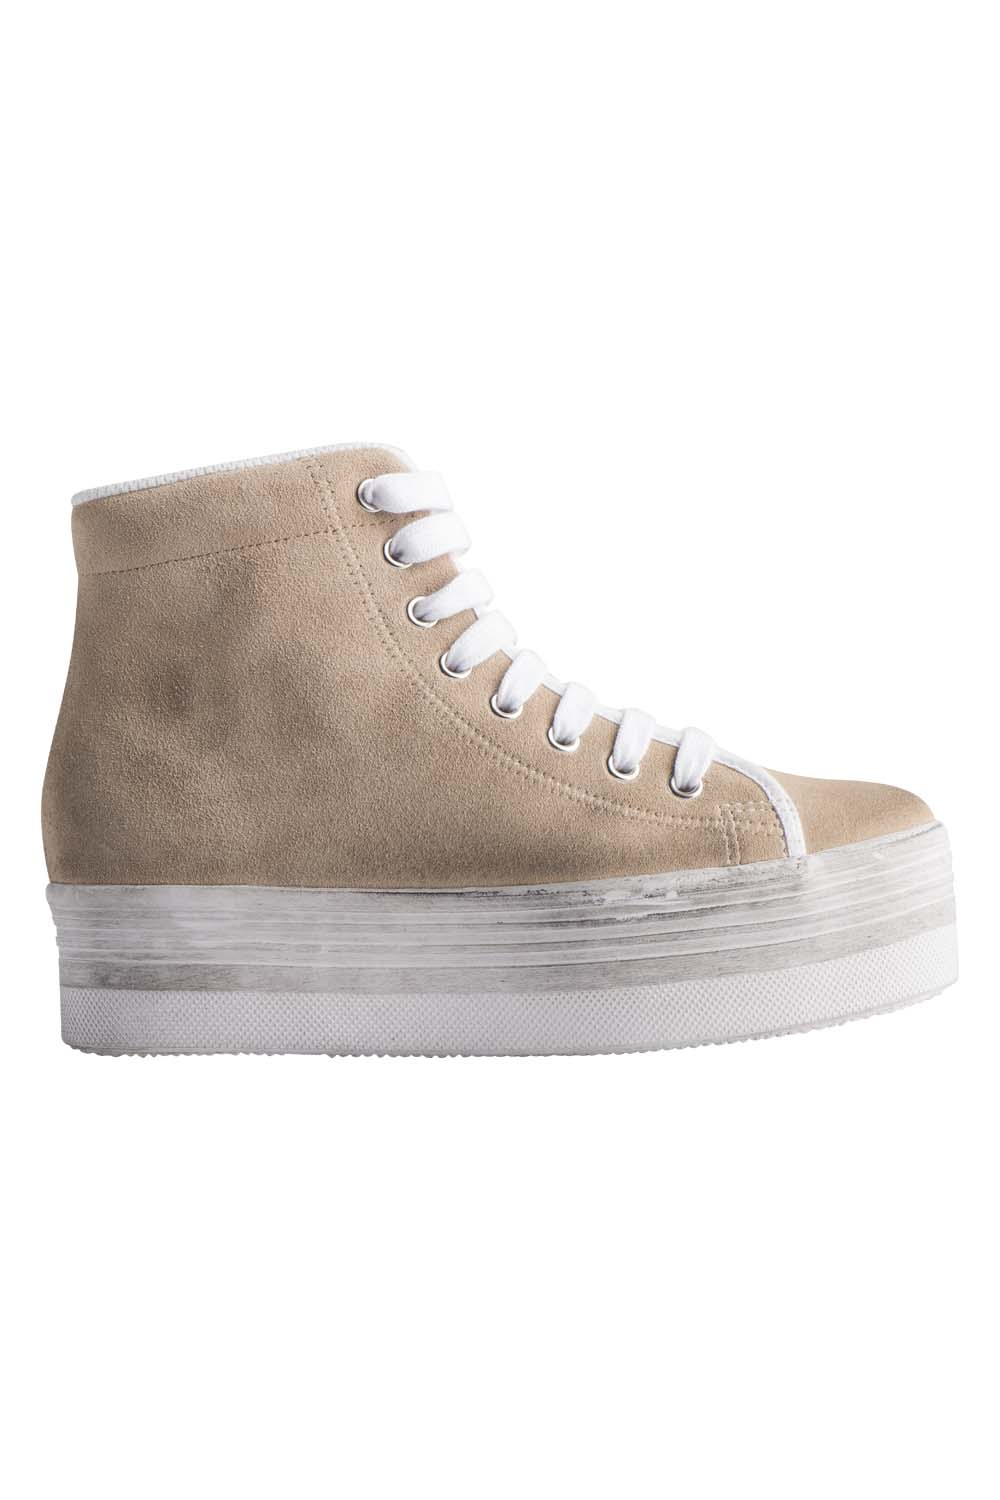 JEFFREY CAMPBELL SNEAKERS - HOMG SAND WASHED SUEDE.jpg